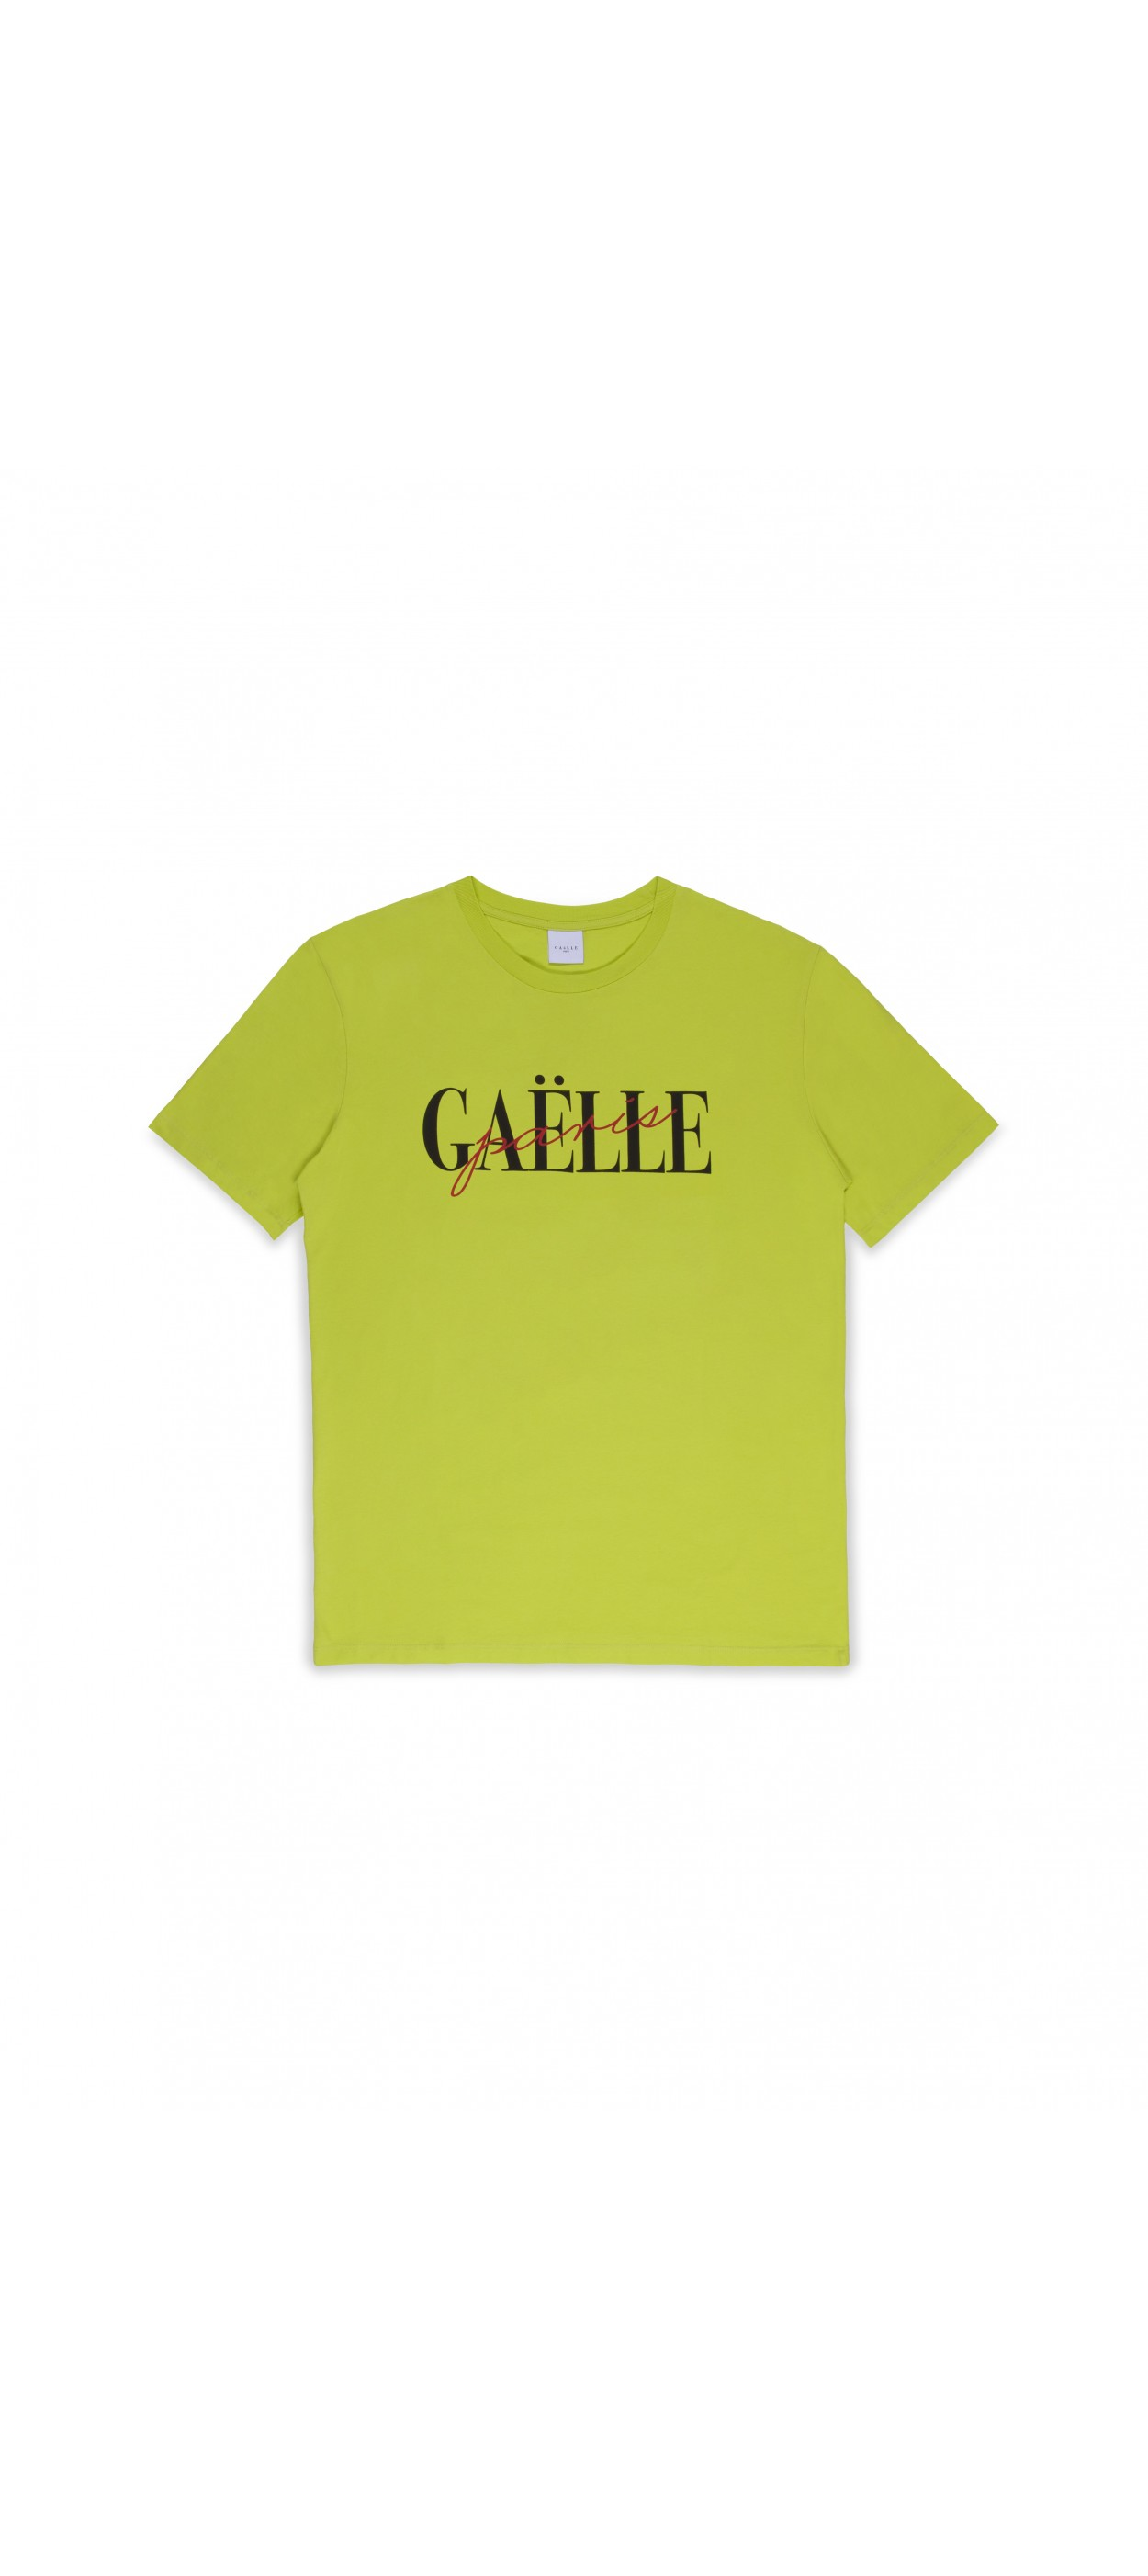 T-SHIRT - GBU2051 - GAELLE PARIS